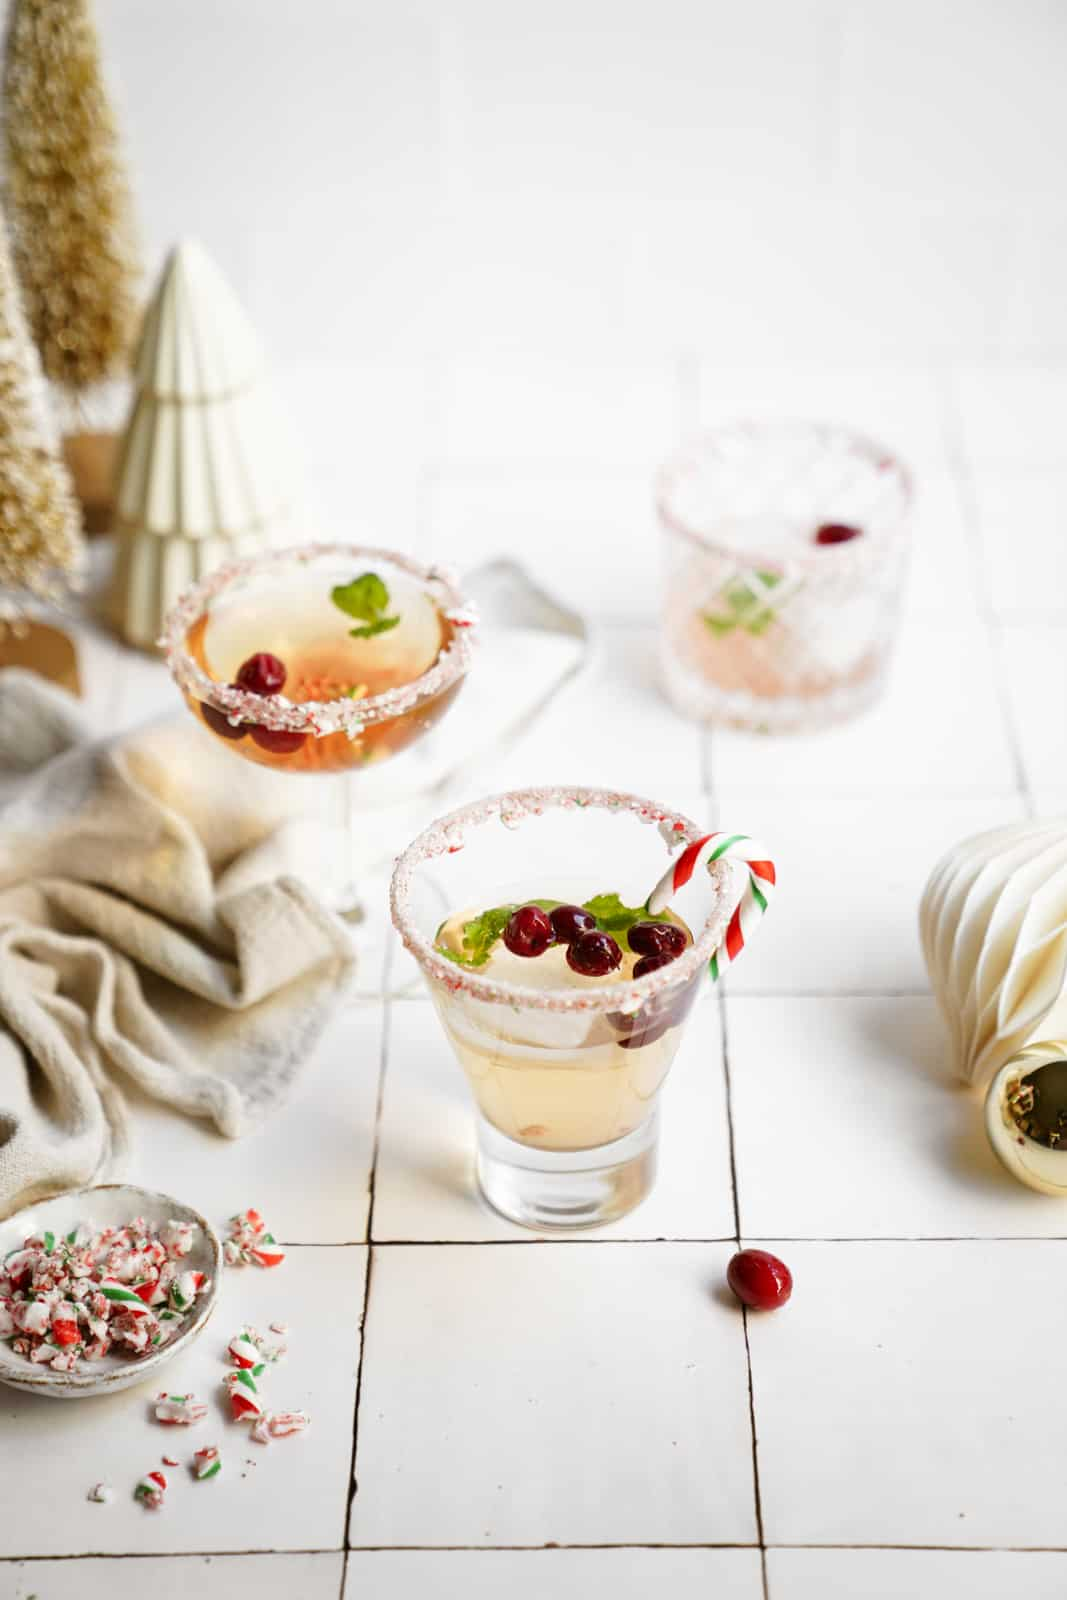 Candy Cane Martinis on countertop surrounded by holiday decor.